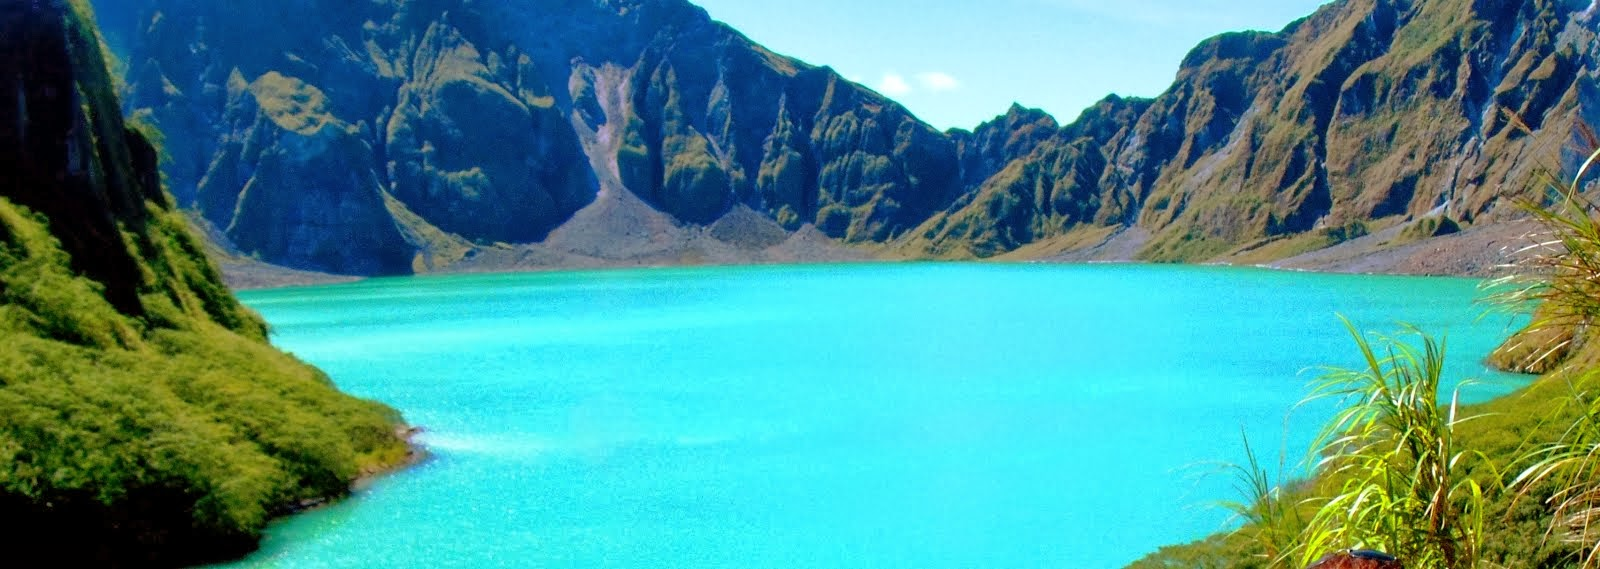 JOINER? LOOKING FOR PINATUBO PUBLIC TOUR AND SHARED TRIPS?